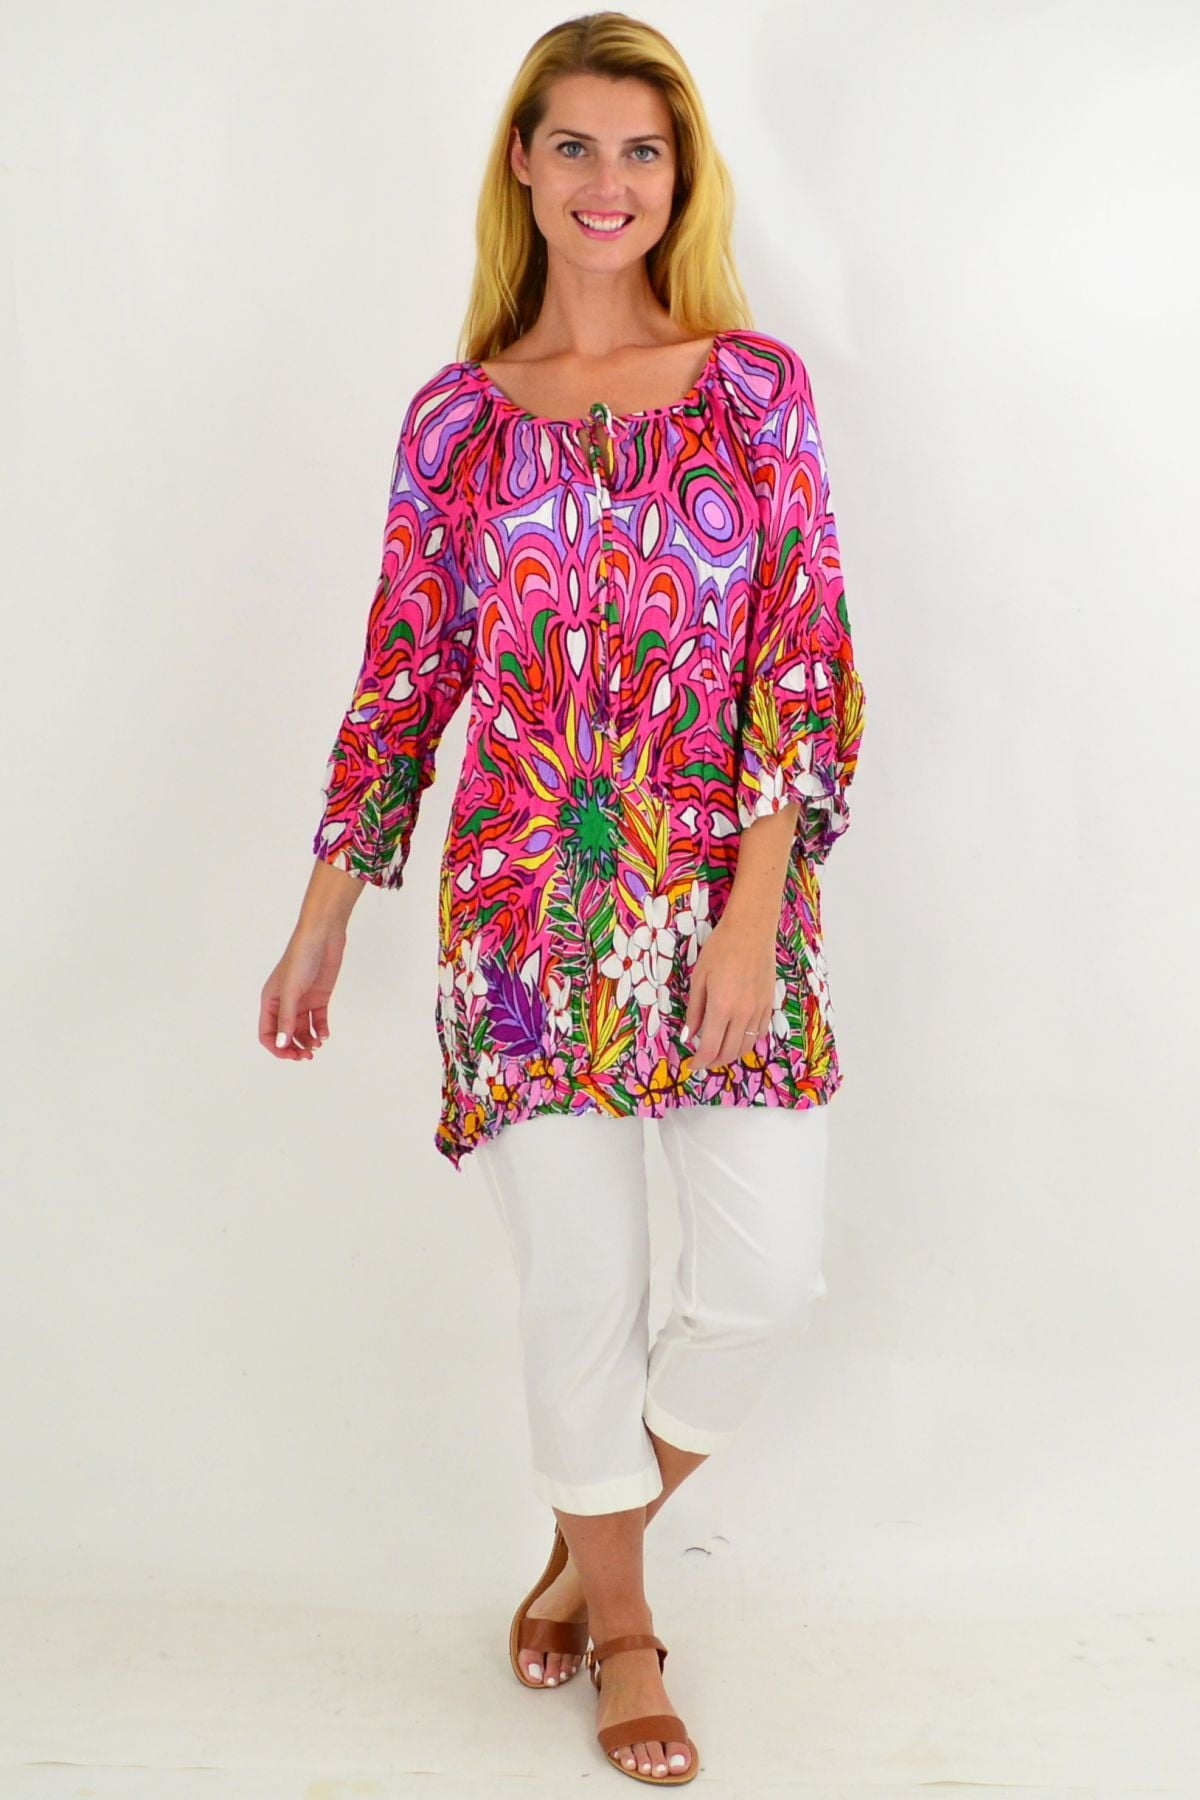 Pink Floral Crinkle Tie Tunic Top | I Love Tunics | Tunic Tops | Tunic | Tunic Dresses  | womens clothing online